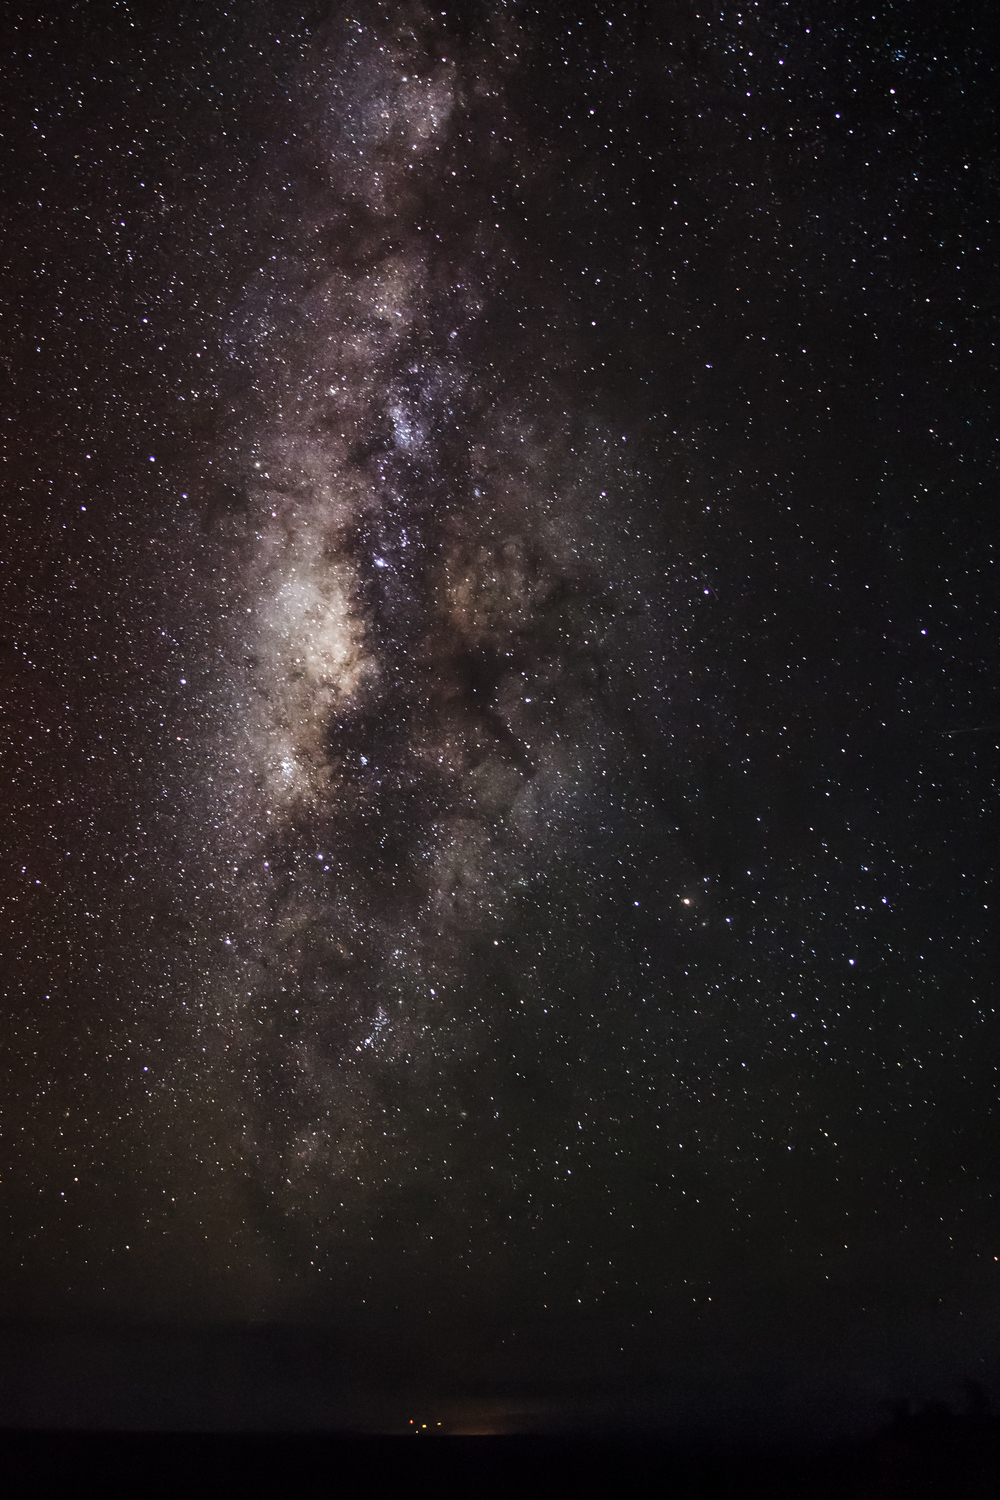 The galactic core of the Milky Way high in the skies above Big Island, Hawaii